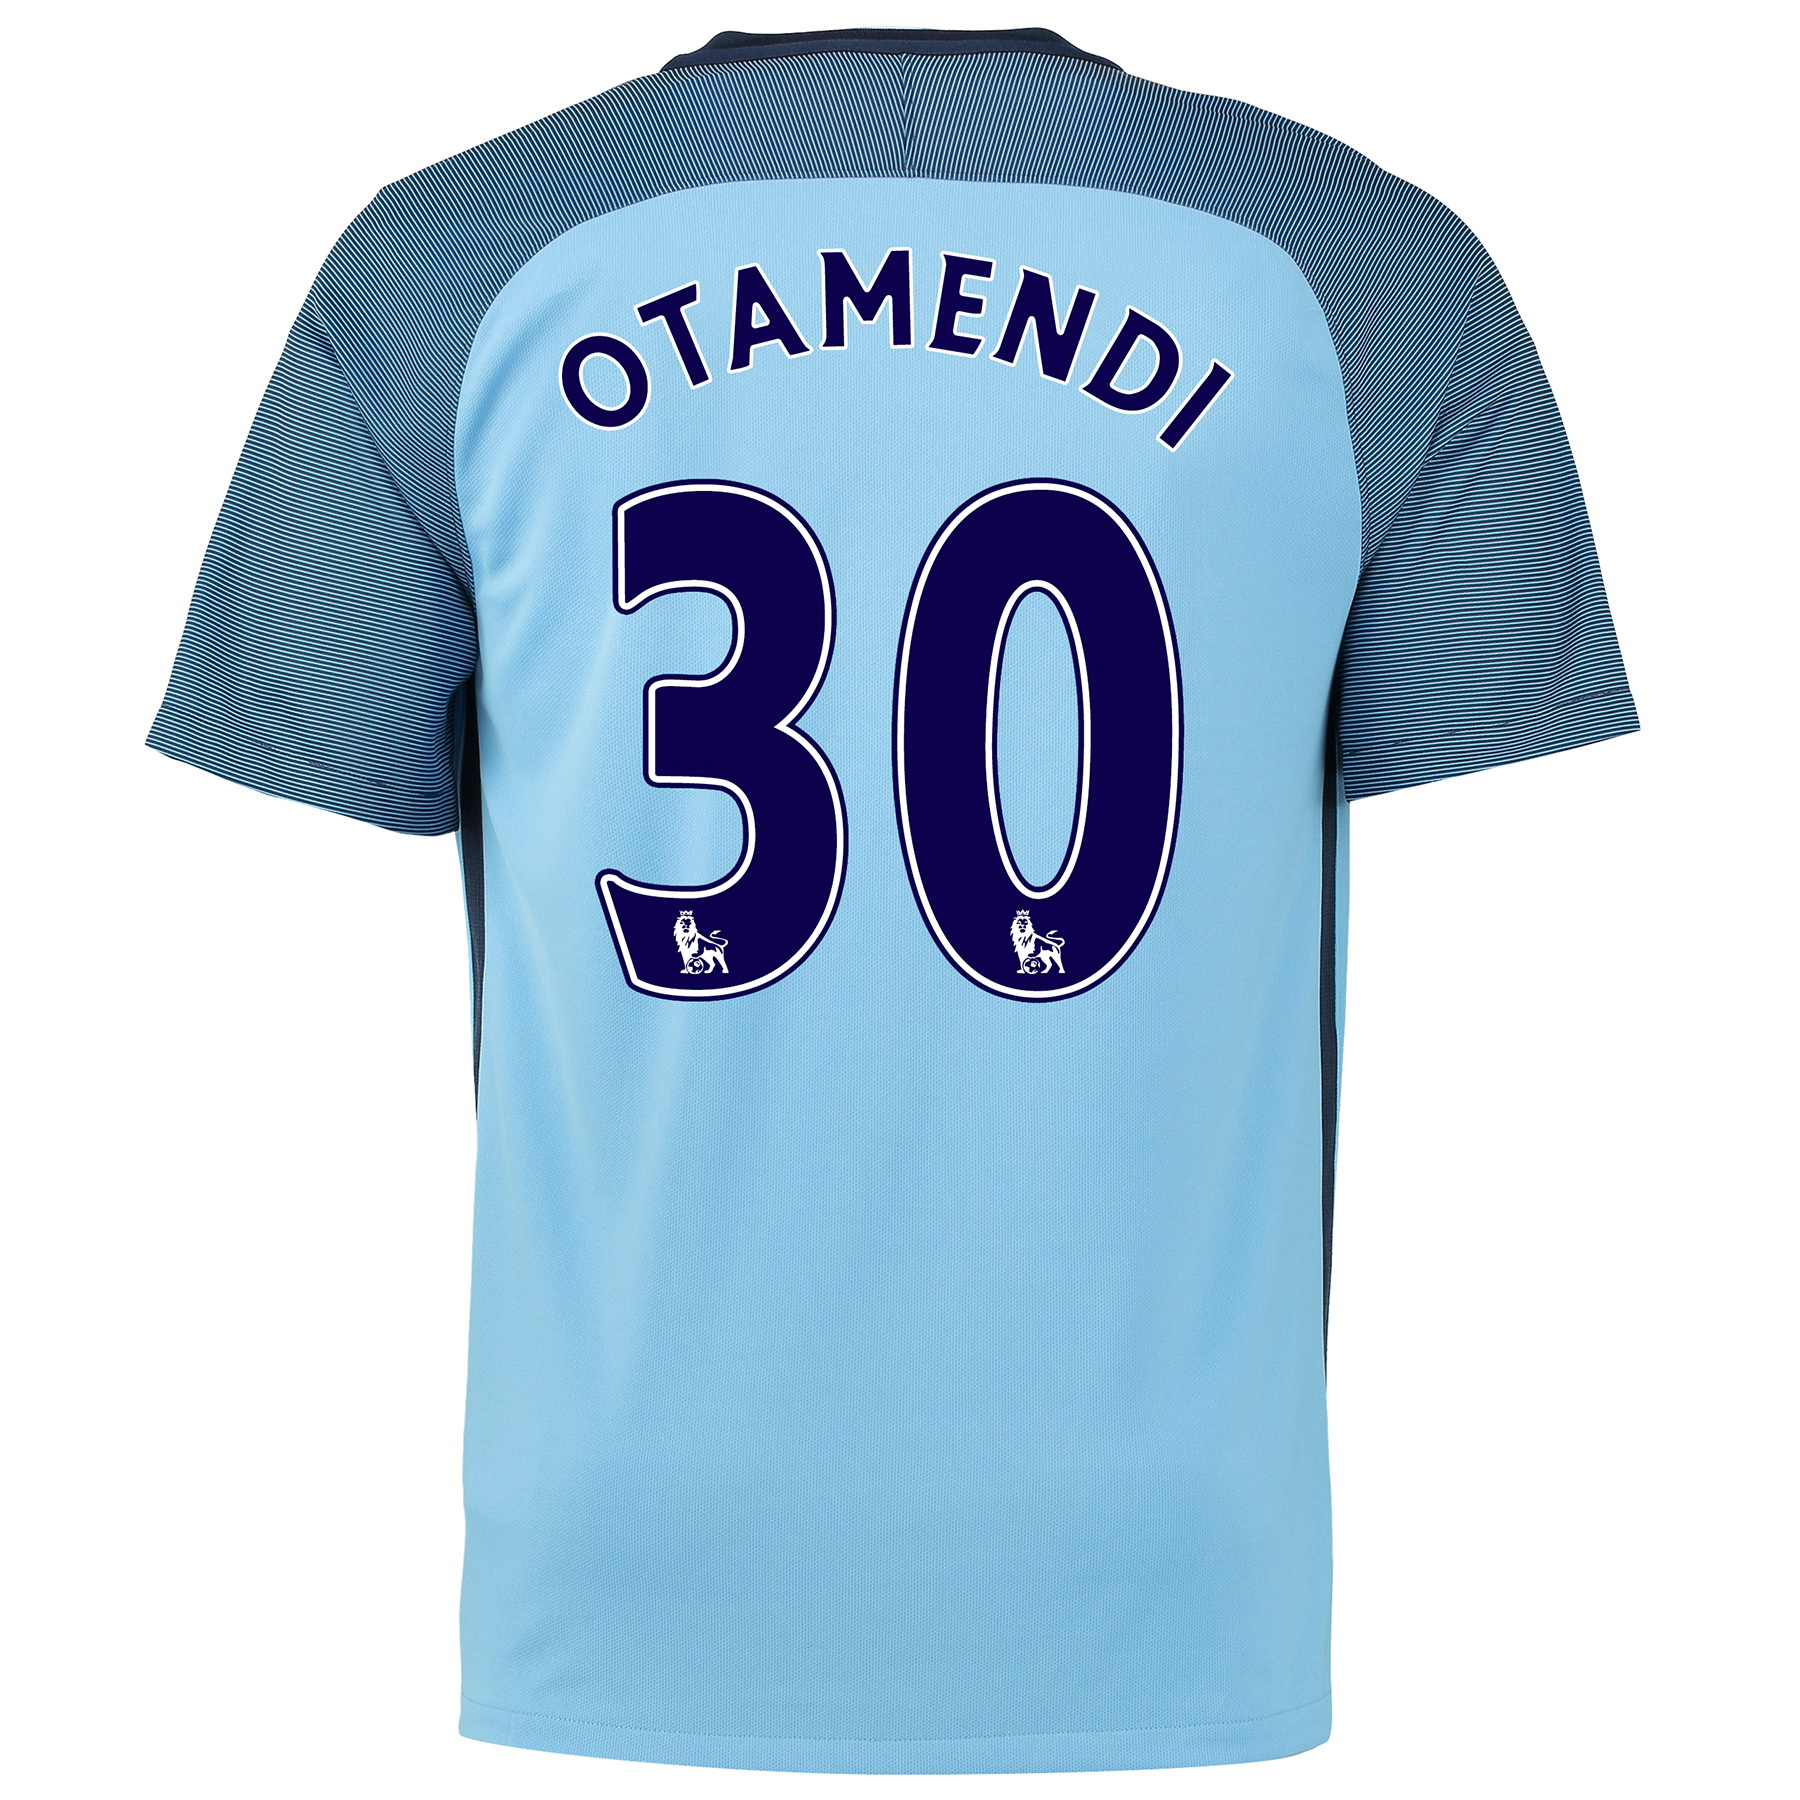 Manchester City Home Shirt 2016-17 - Kids with Otamendi 30 printing